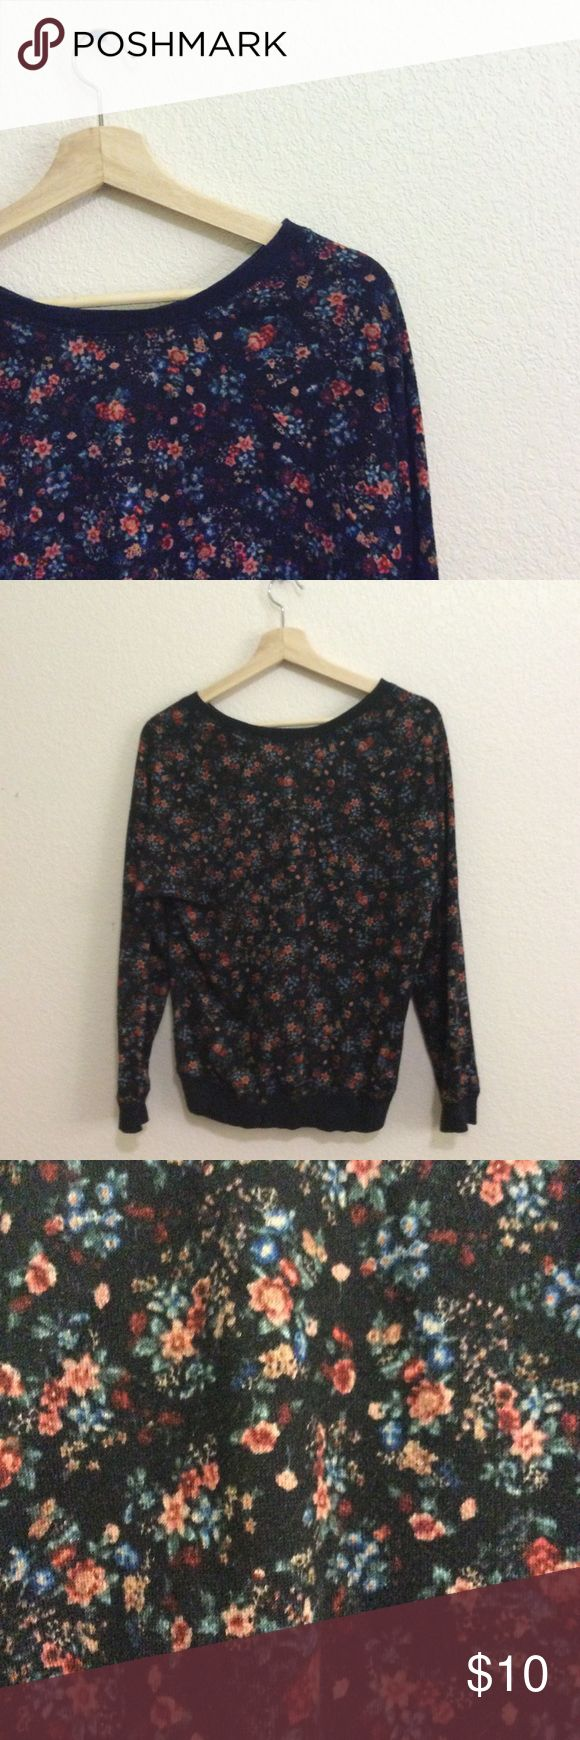 "Black dark floral jumper / sweater No interior tags but around a size medium/small. Not from forever 21! 🌸🌸 Note: My closet is open until July 15th! After July 15th, I will keep my items posted but ""not for sale"" until August after I move! Some items may be donated in this time, so if there's something you like, snatch it up quick 🌸🌸 Forever 21 Sweaters Crew & Scoop Necks"